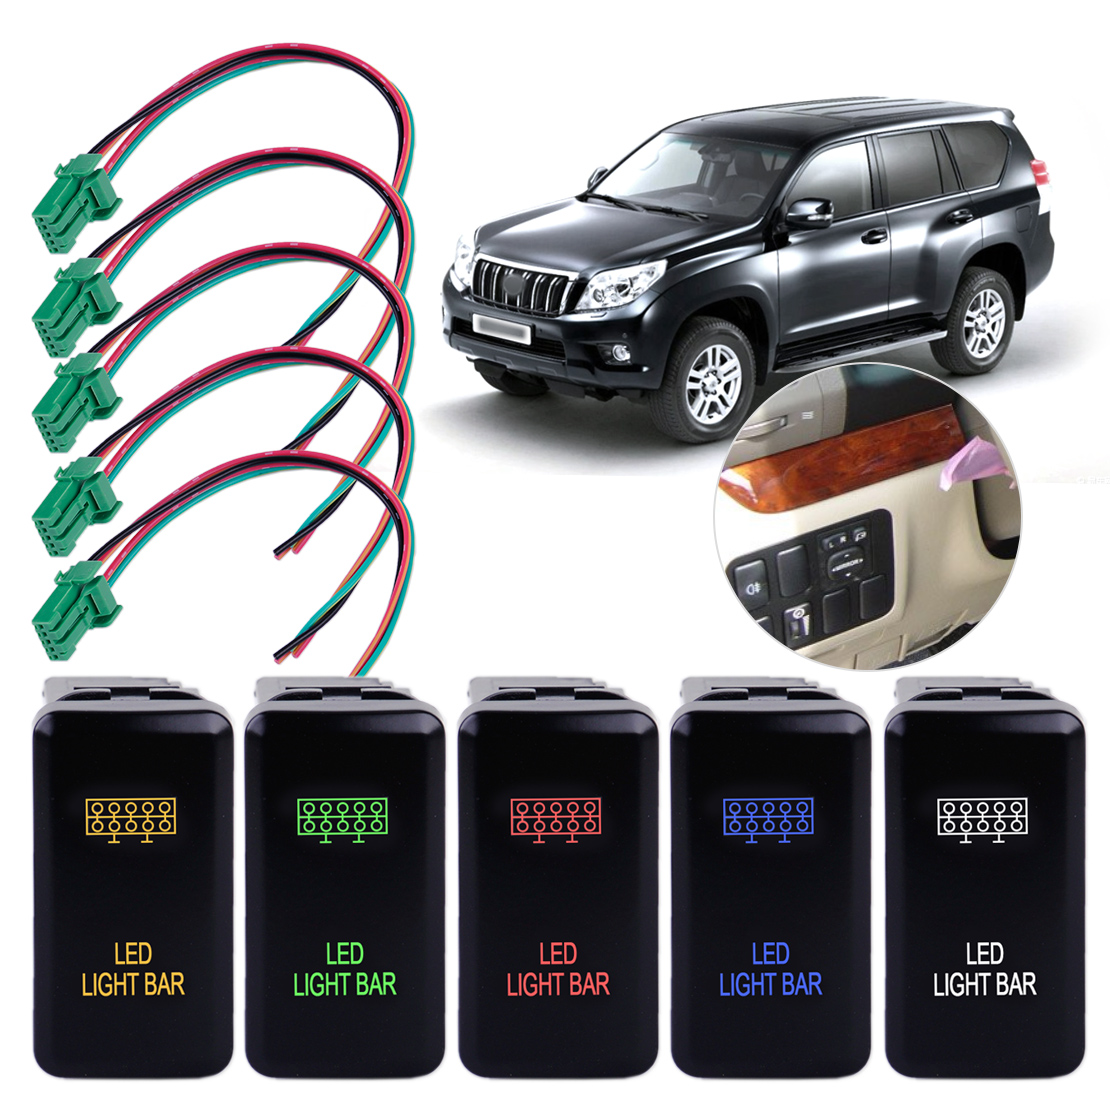 Citall 12v Led Fog Light Push Button Switch With Harness Wire Fit 2007 Wrx Wiring For Toyota Fj Cruiser Prado Landcruiser Hilux Tacoma In Car Switches Relays From